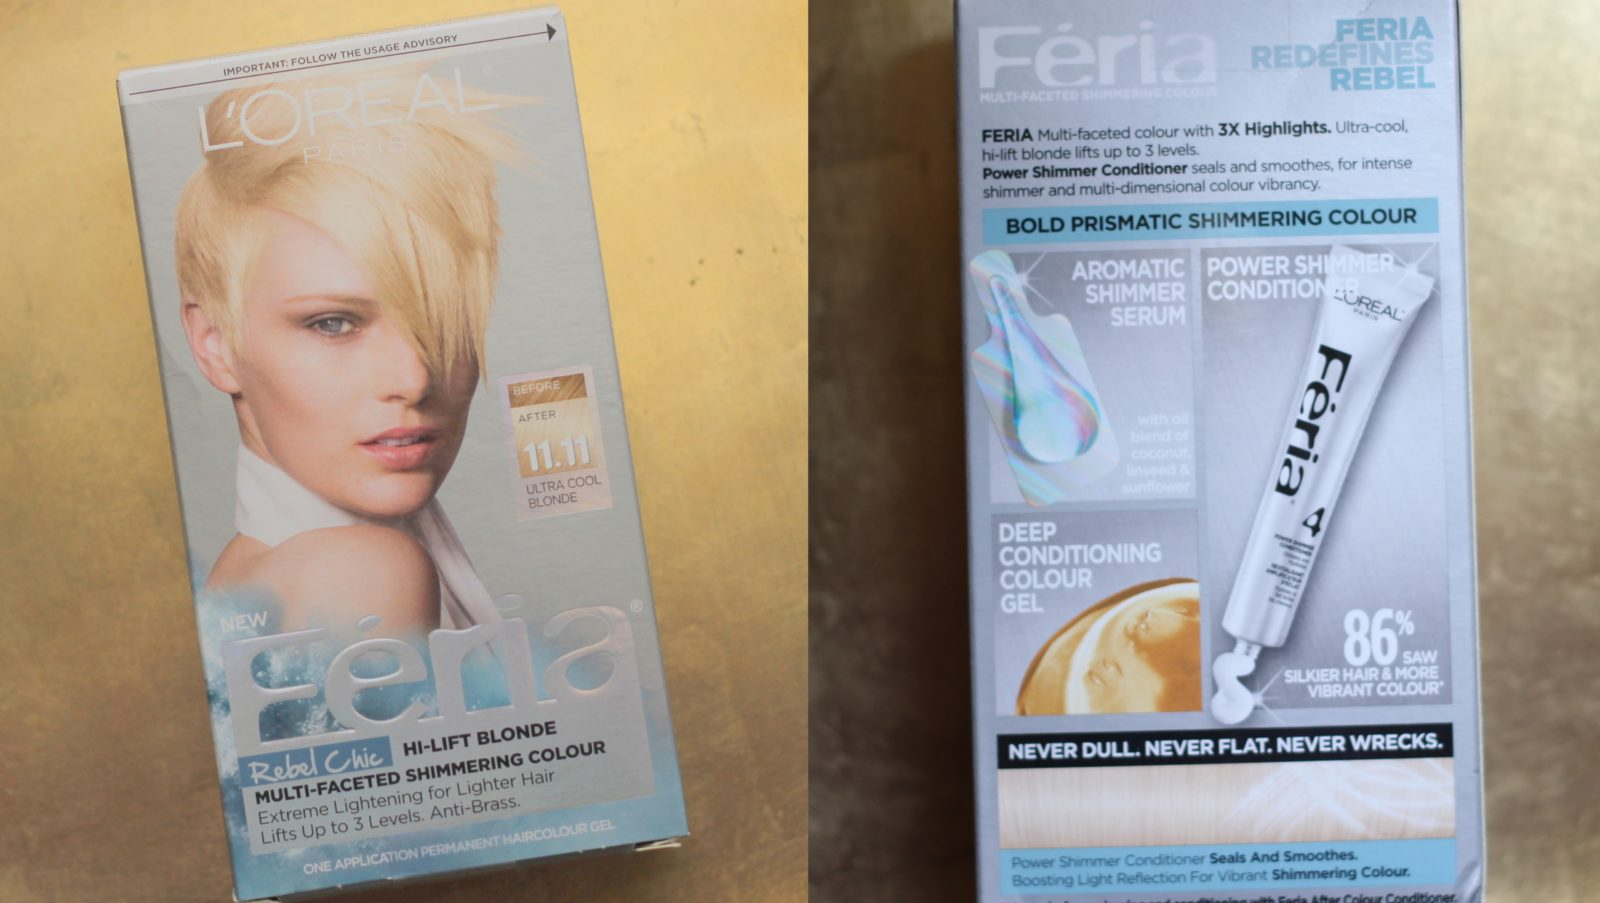 Review with Before and After Photos: Feria Rebel Chic Hi-Lift Blonde – Shade 11.11 Icy Blonde